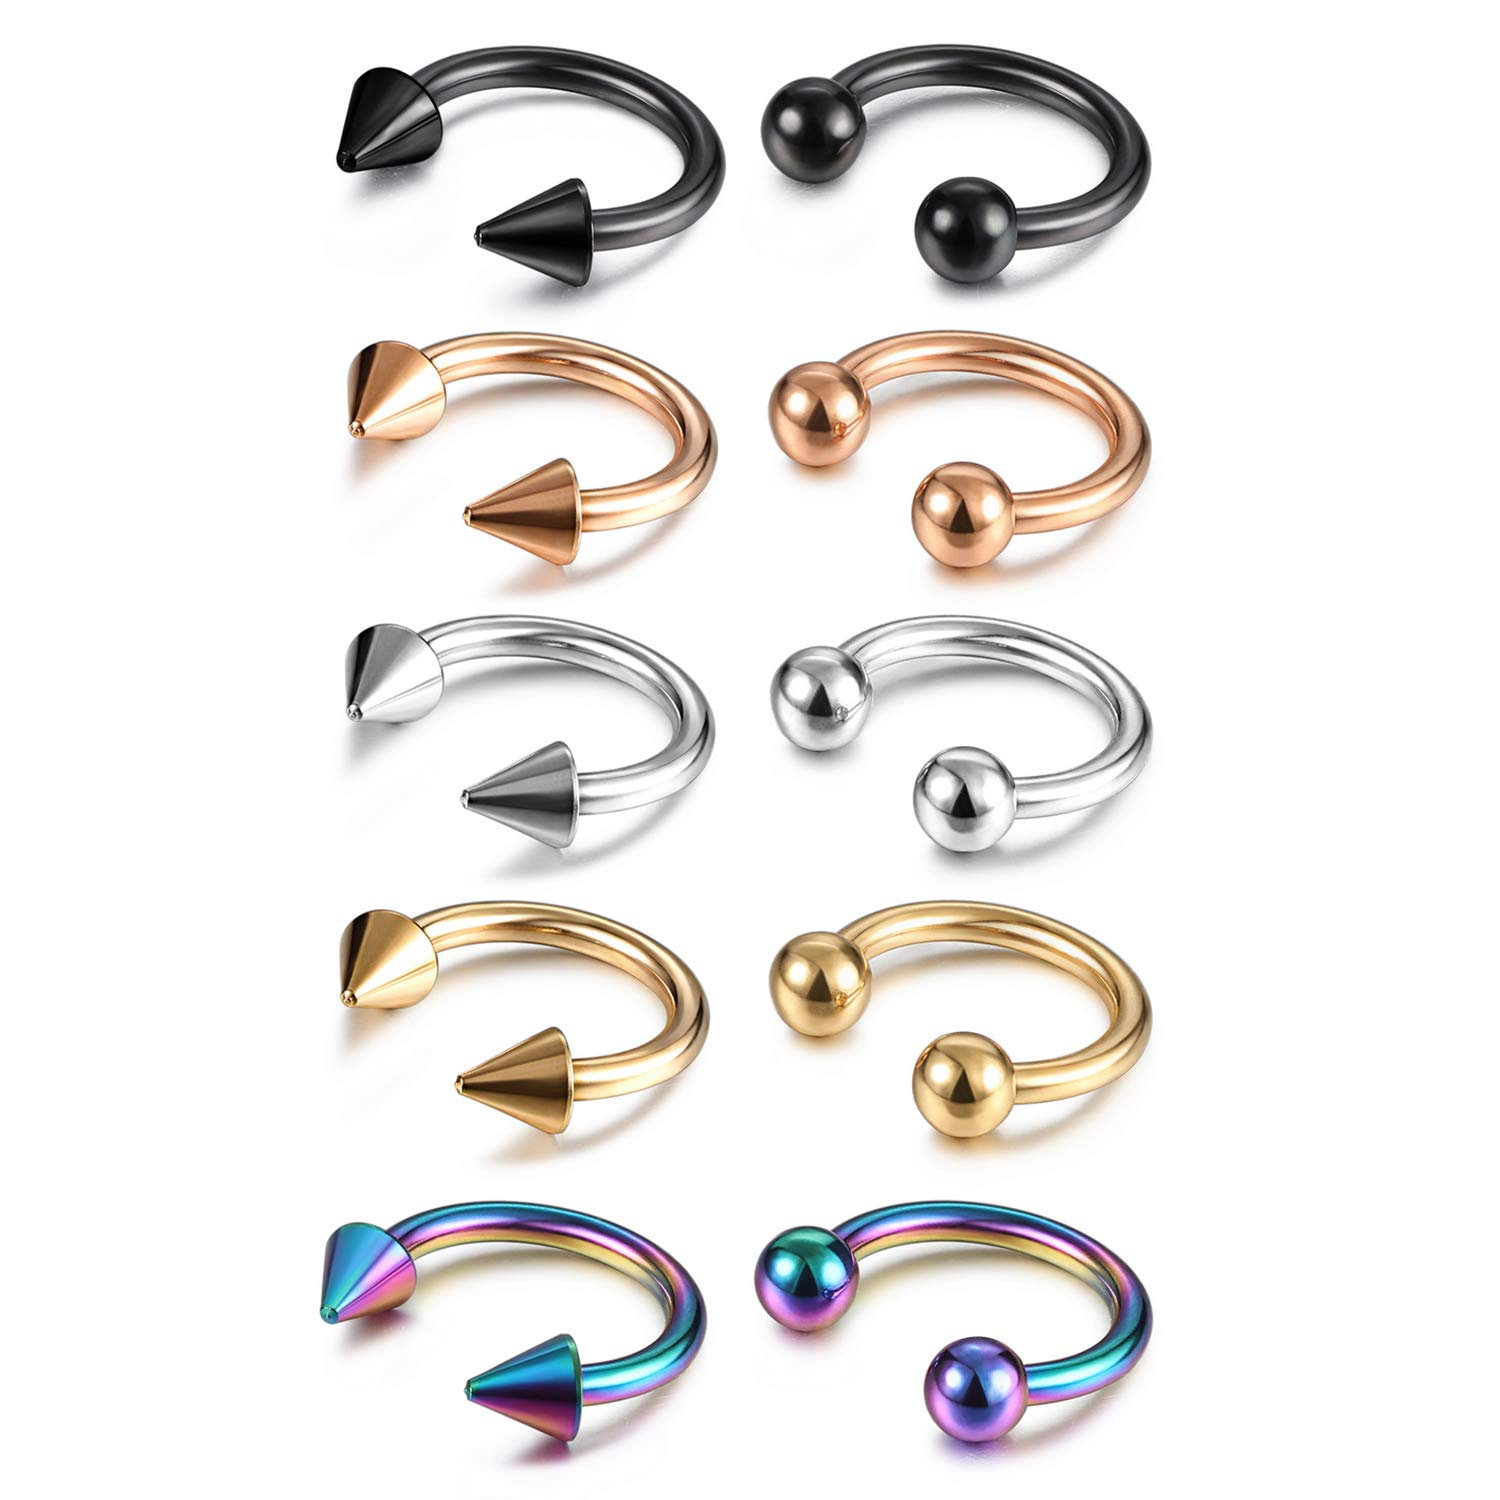 Evevil 14G Stainless Steel Septum Nose Ring Mixed 10 Pieces Septum Jewelry Set Horseshoe Hoop Earrings EV18JL050020-10P-F